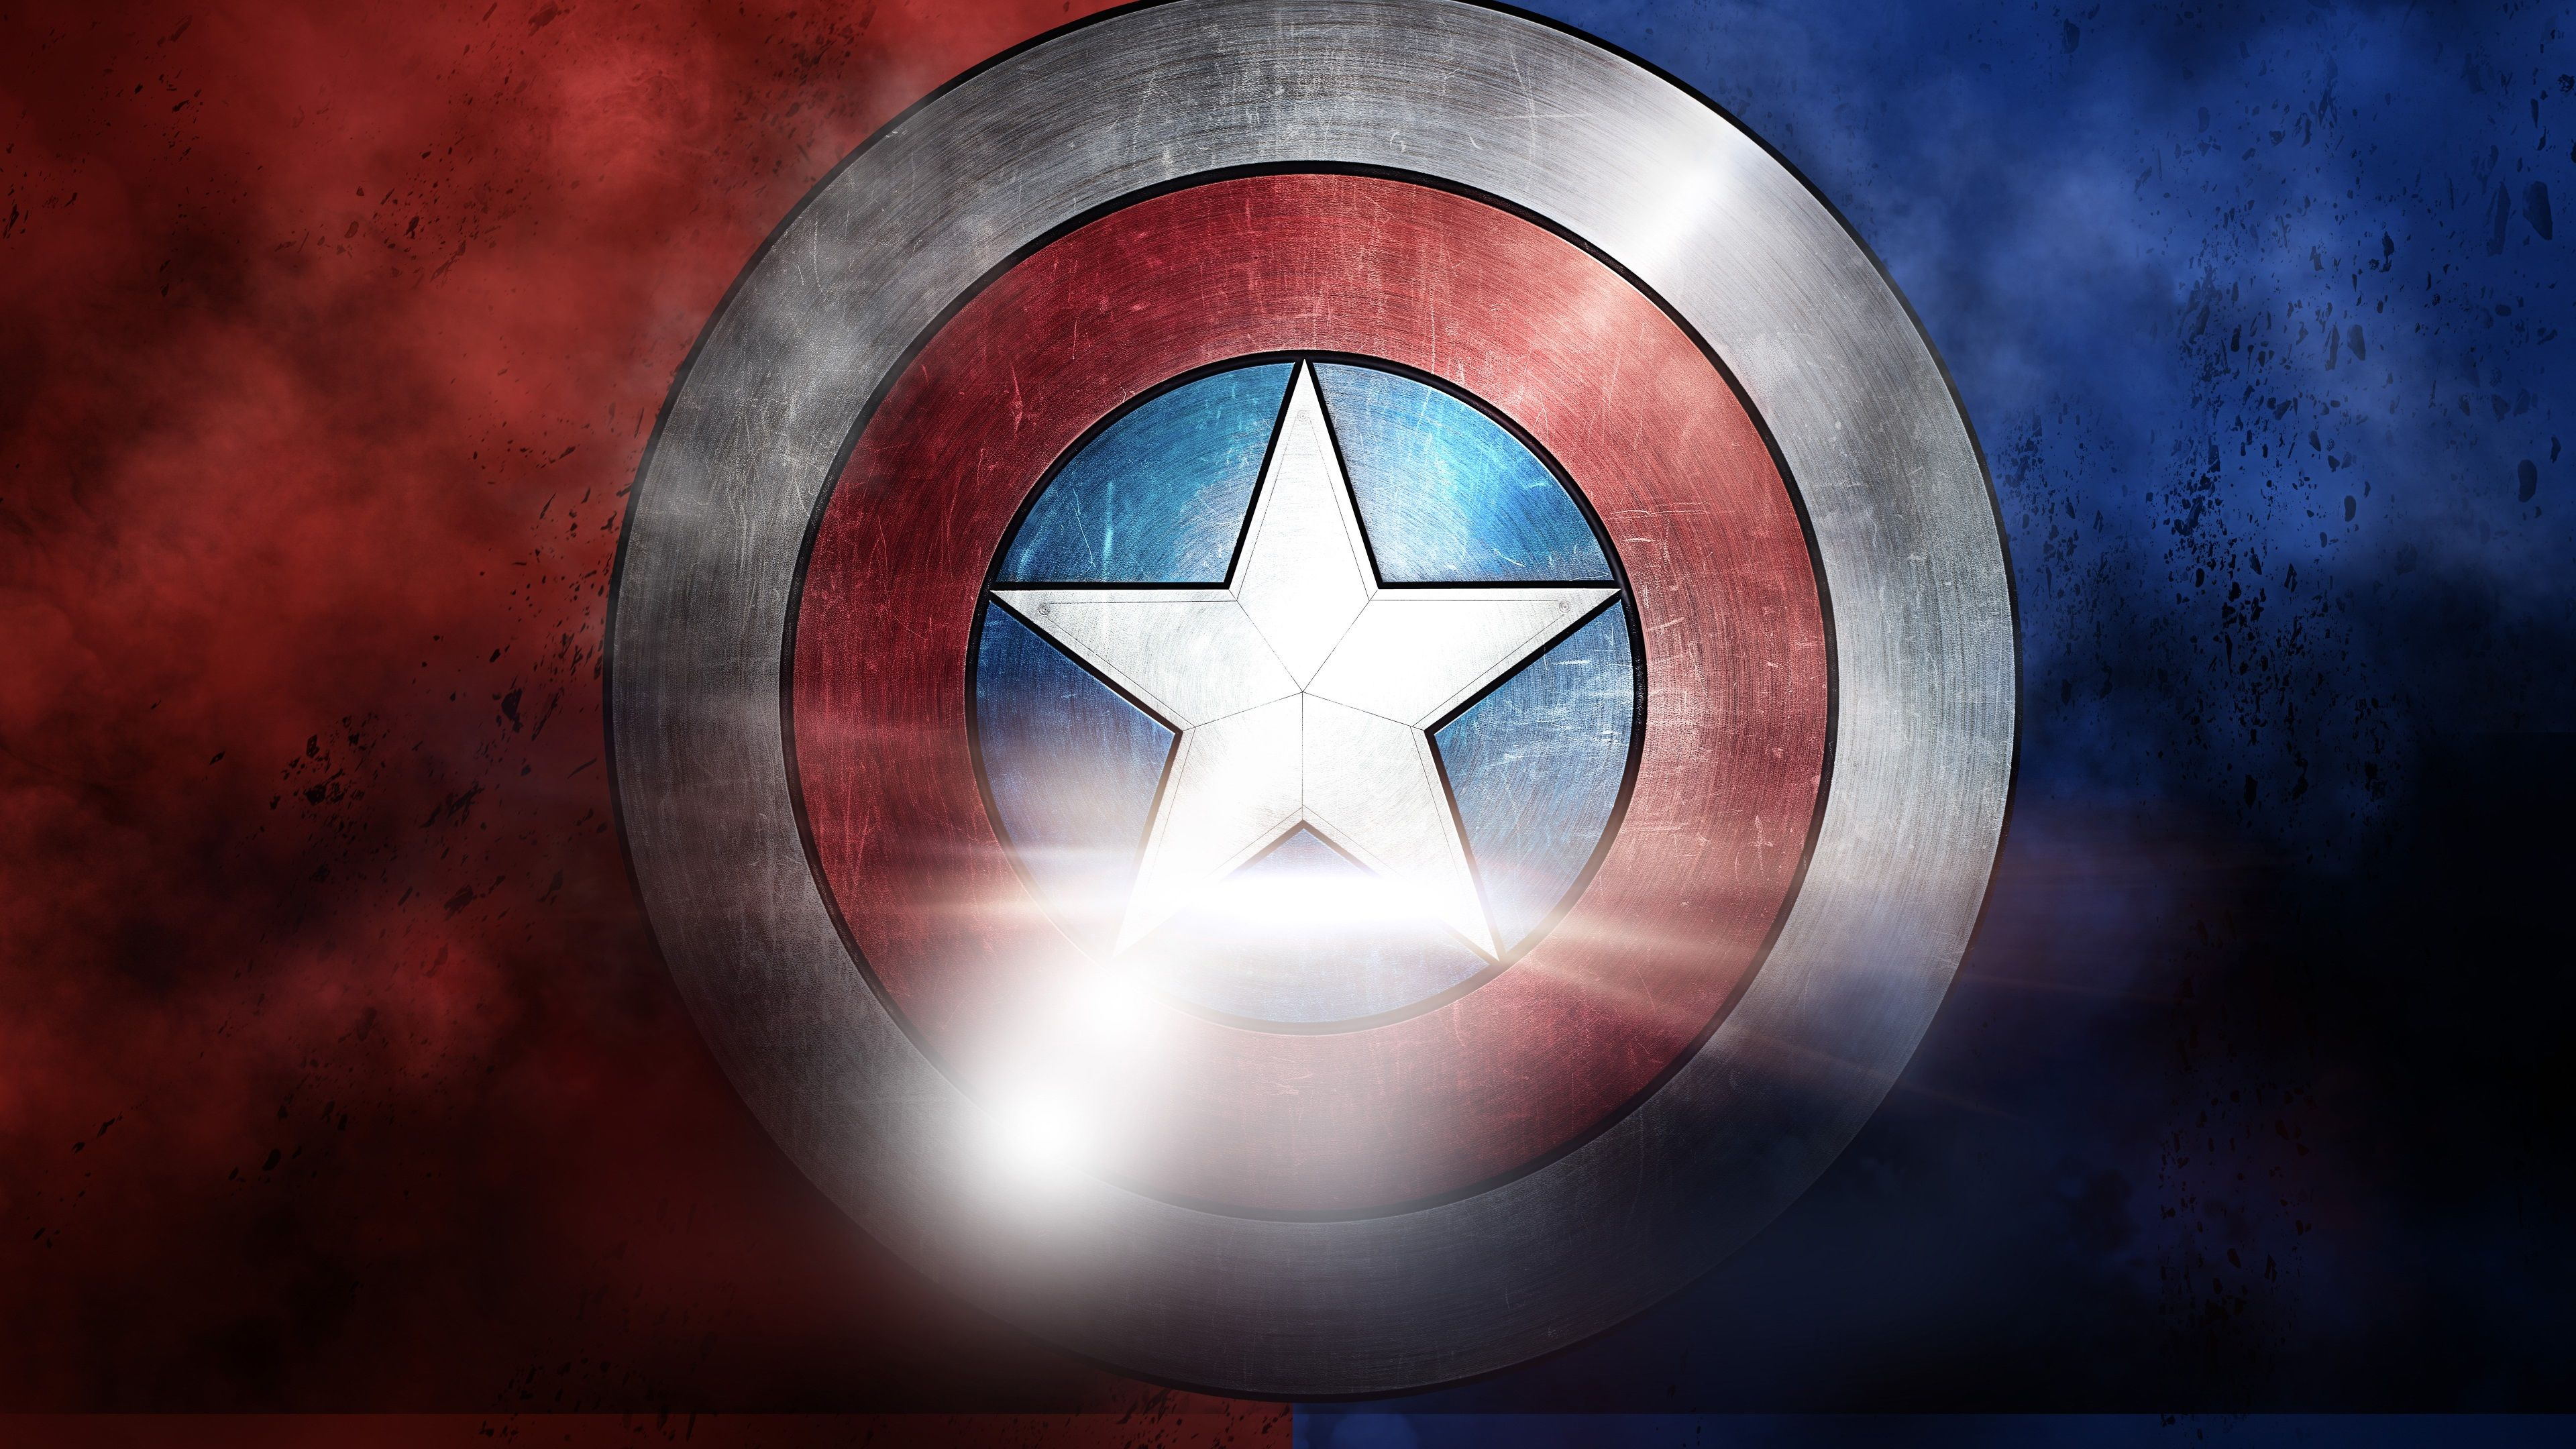 3840x2160 Captain America 4k Free Wallpaper Download Captain America Shield Wallpaper Captain America Wallpaper Captain America Shield Canvas